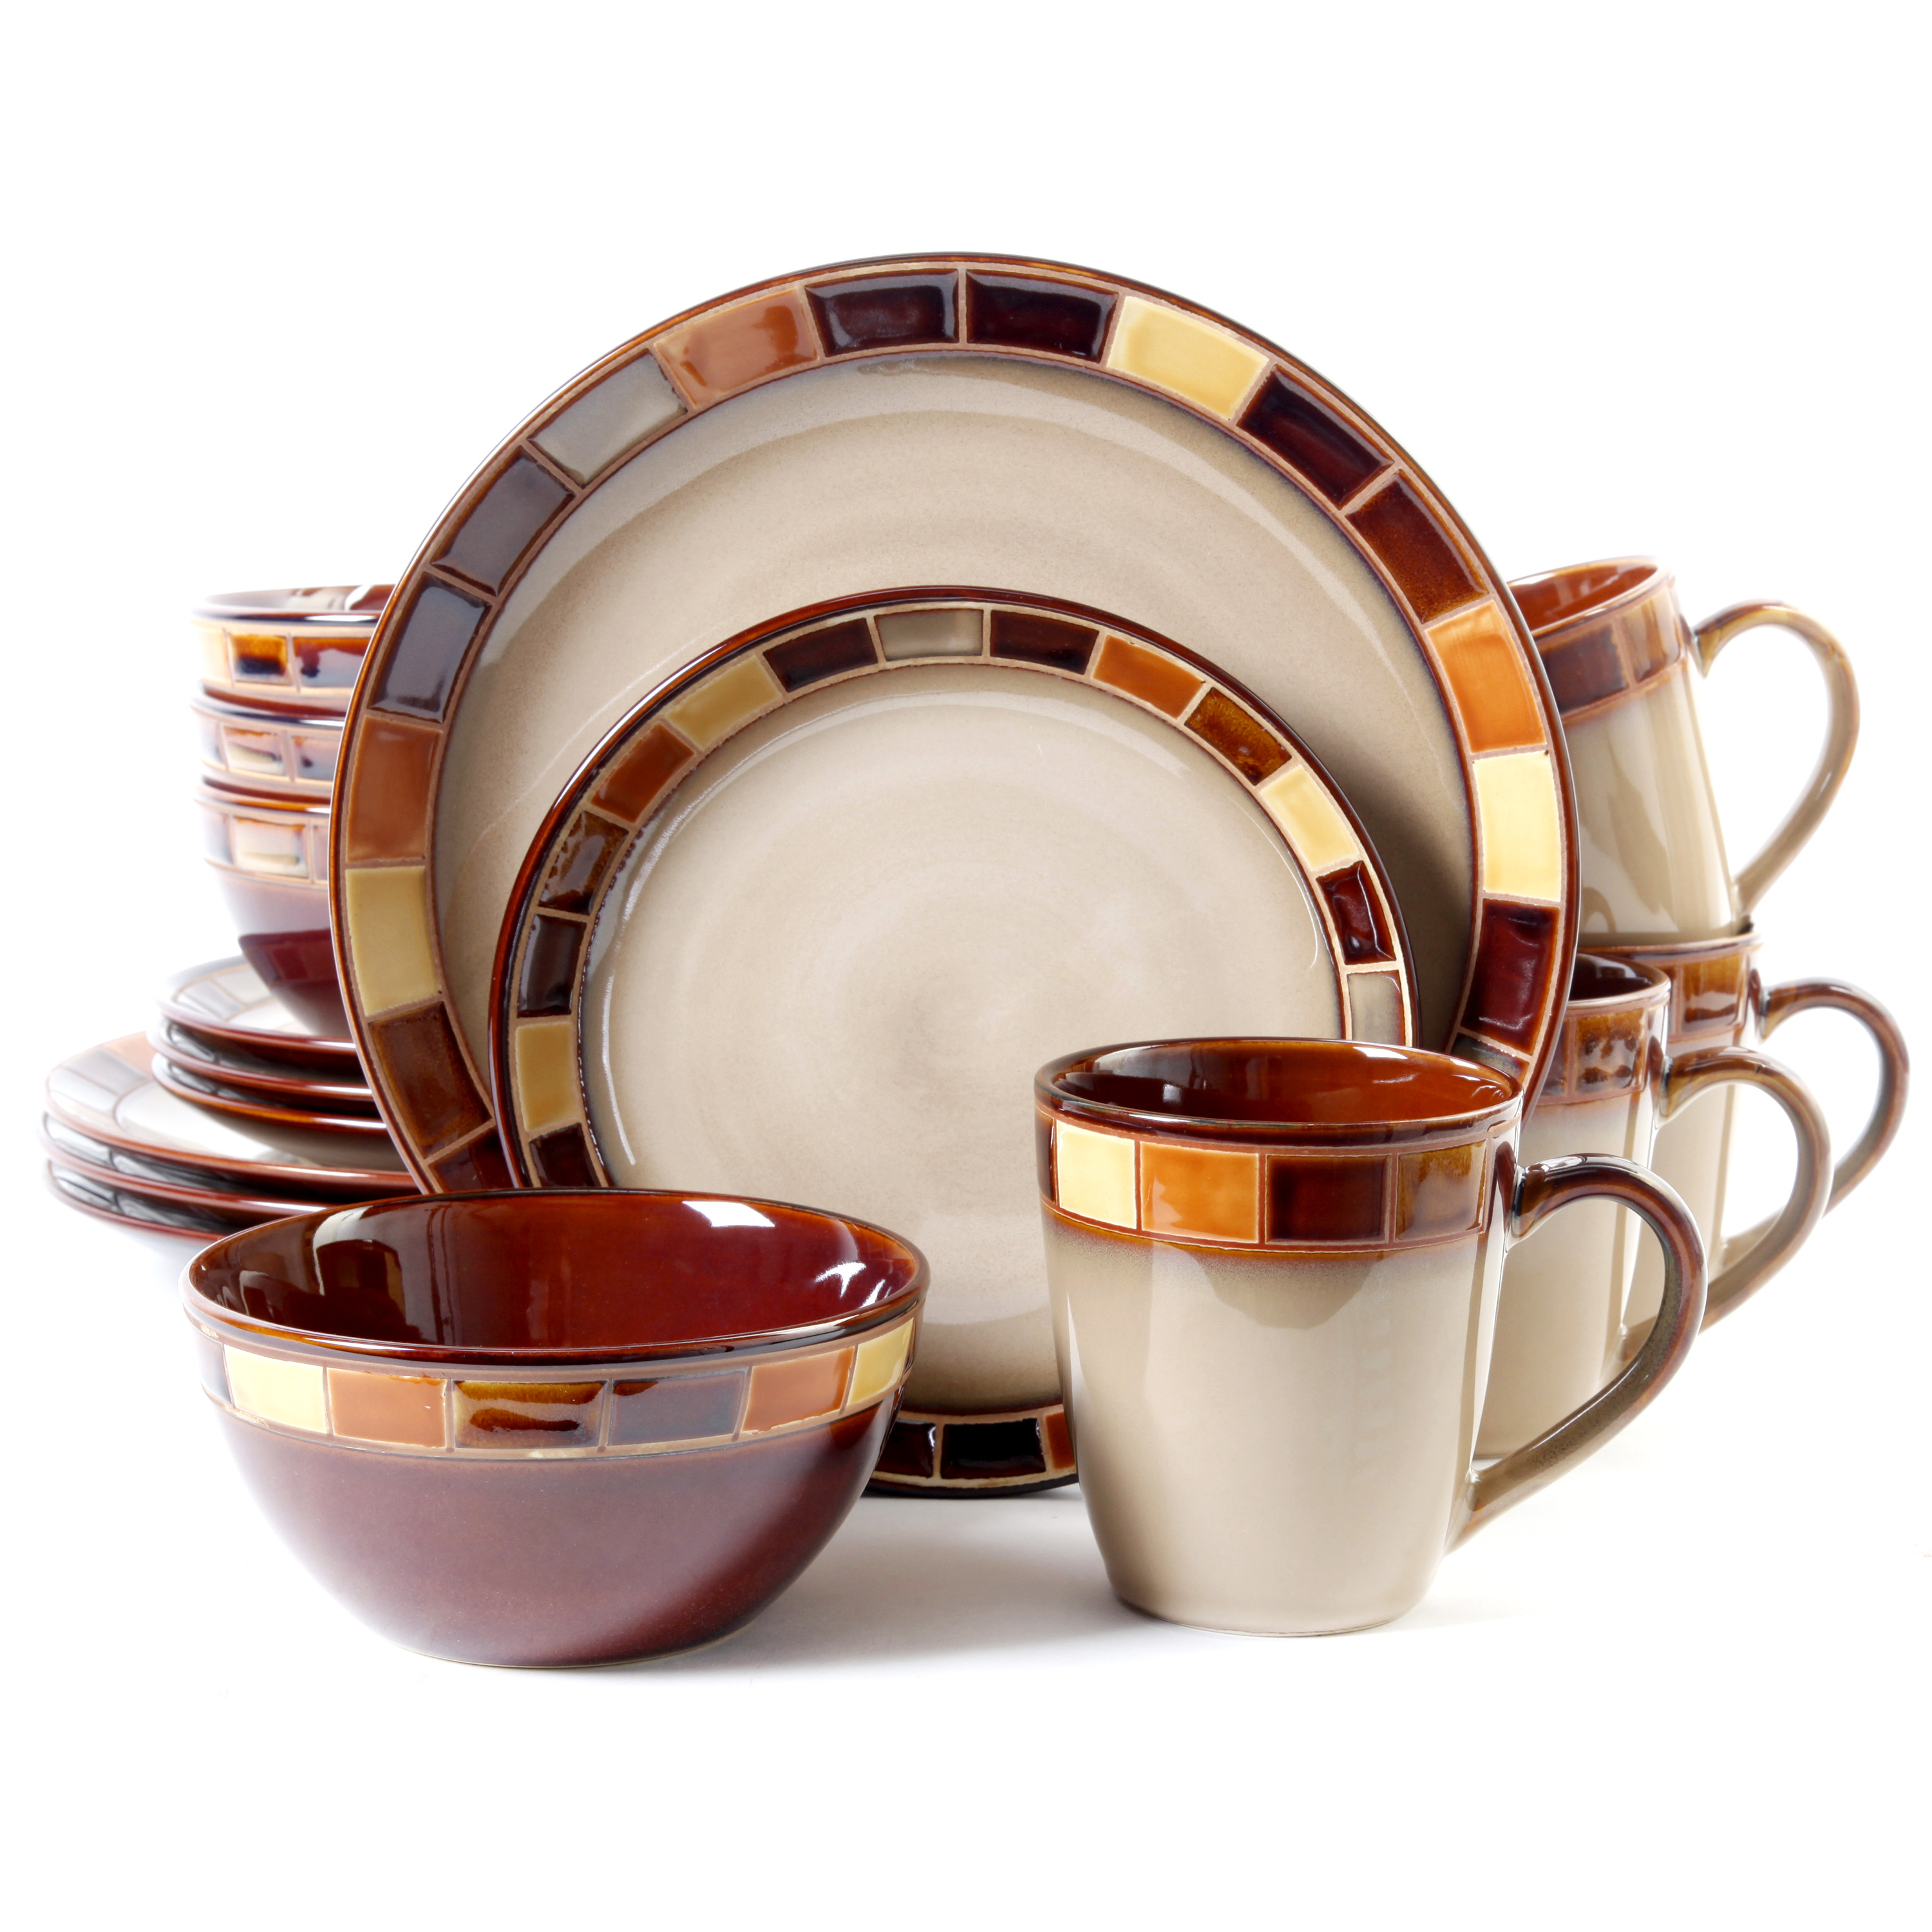 Exciting stoneware dishes for dinnerware ideas with stoneware dishes made in usa